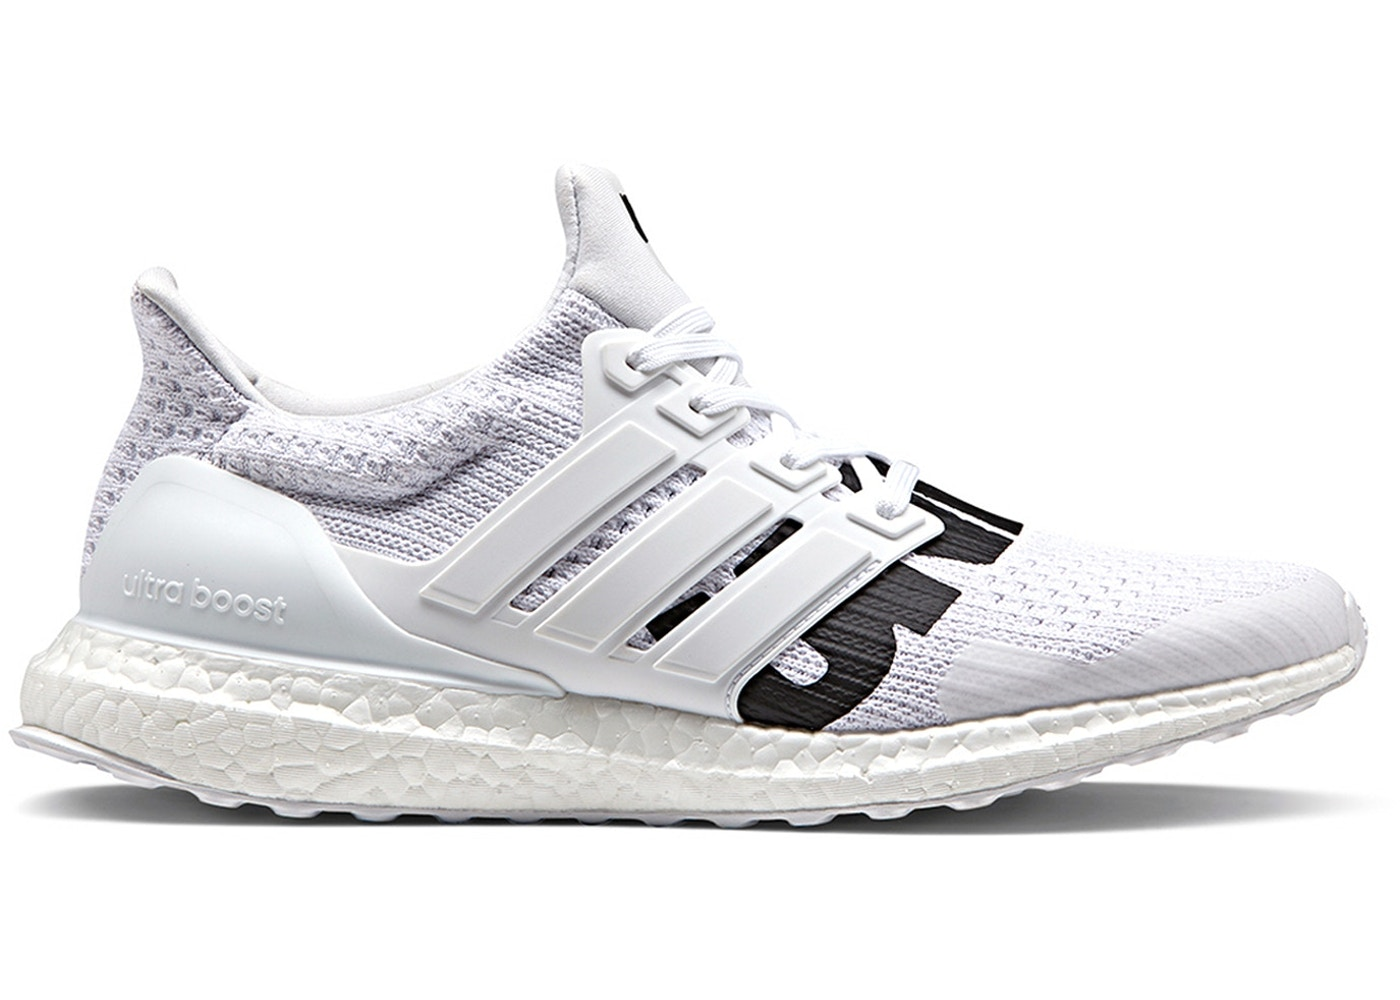 93de1b10 adidas Ultra Boost 1.0 UNDFTD White - BB9102